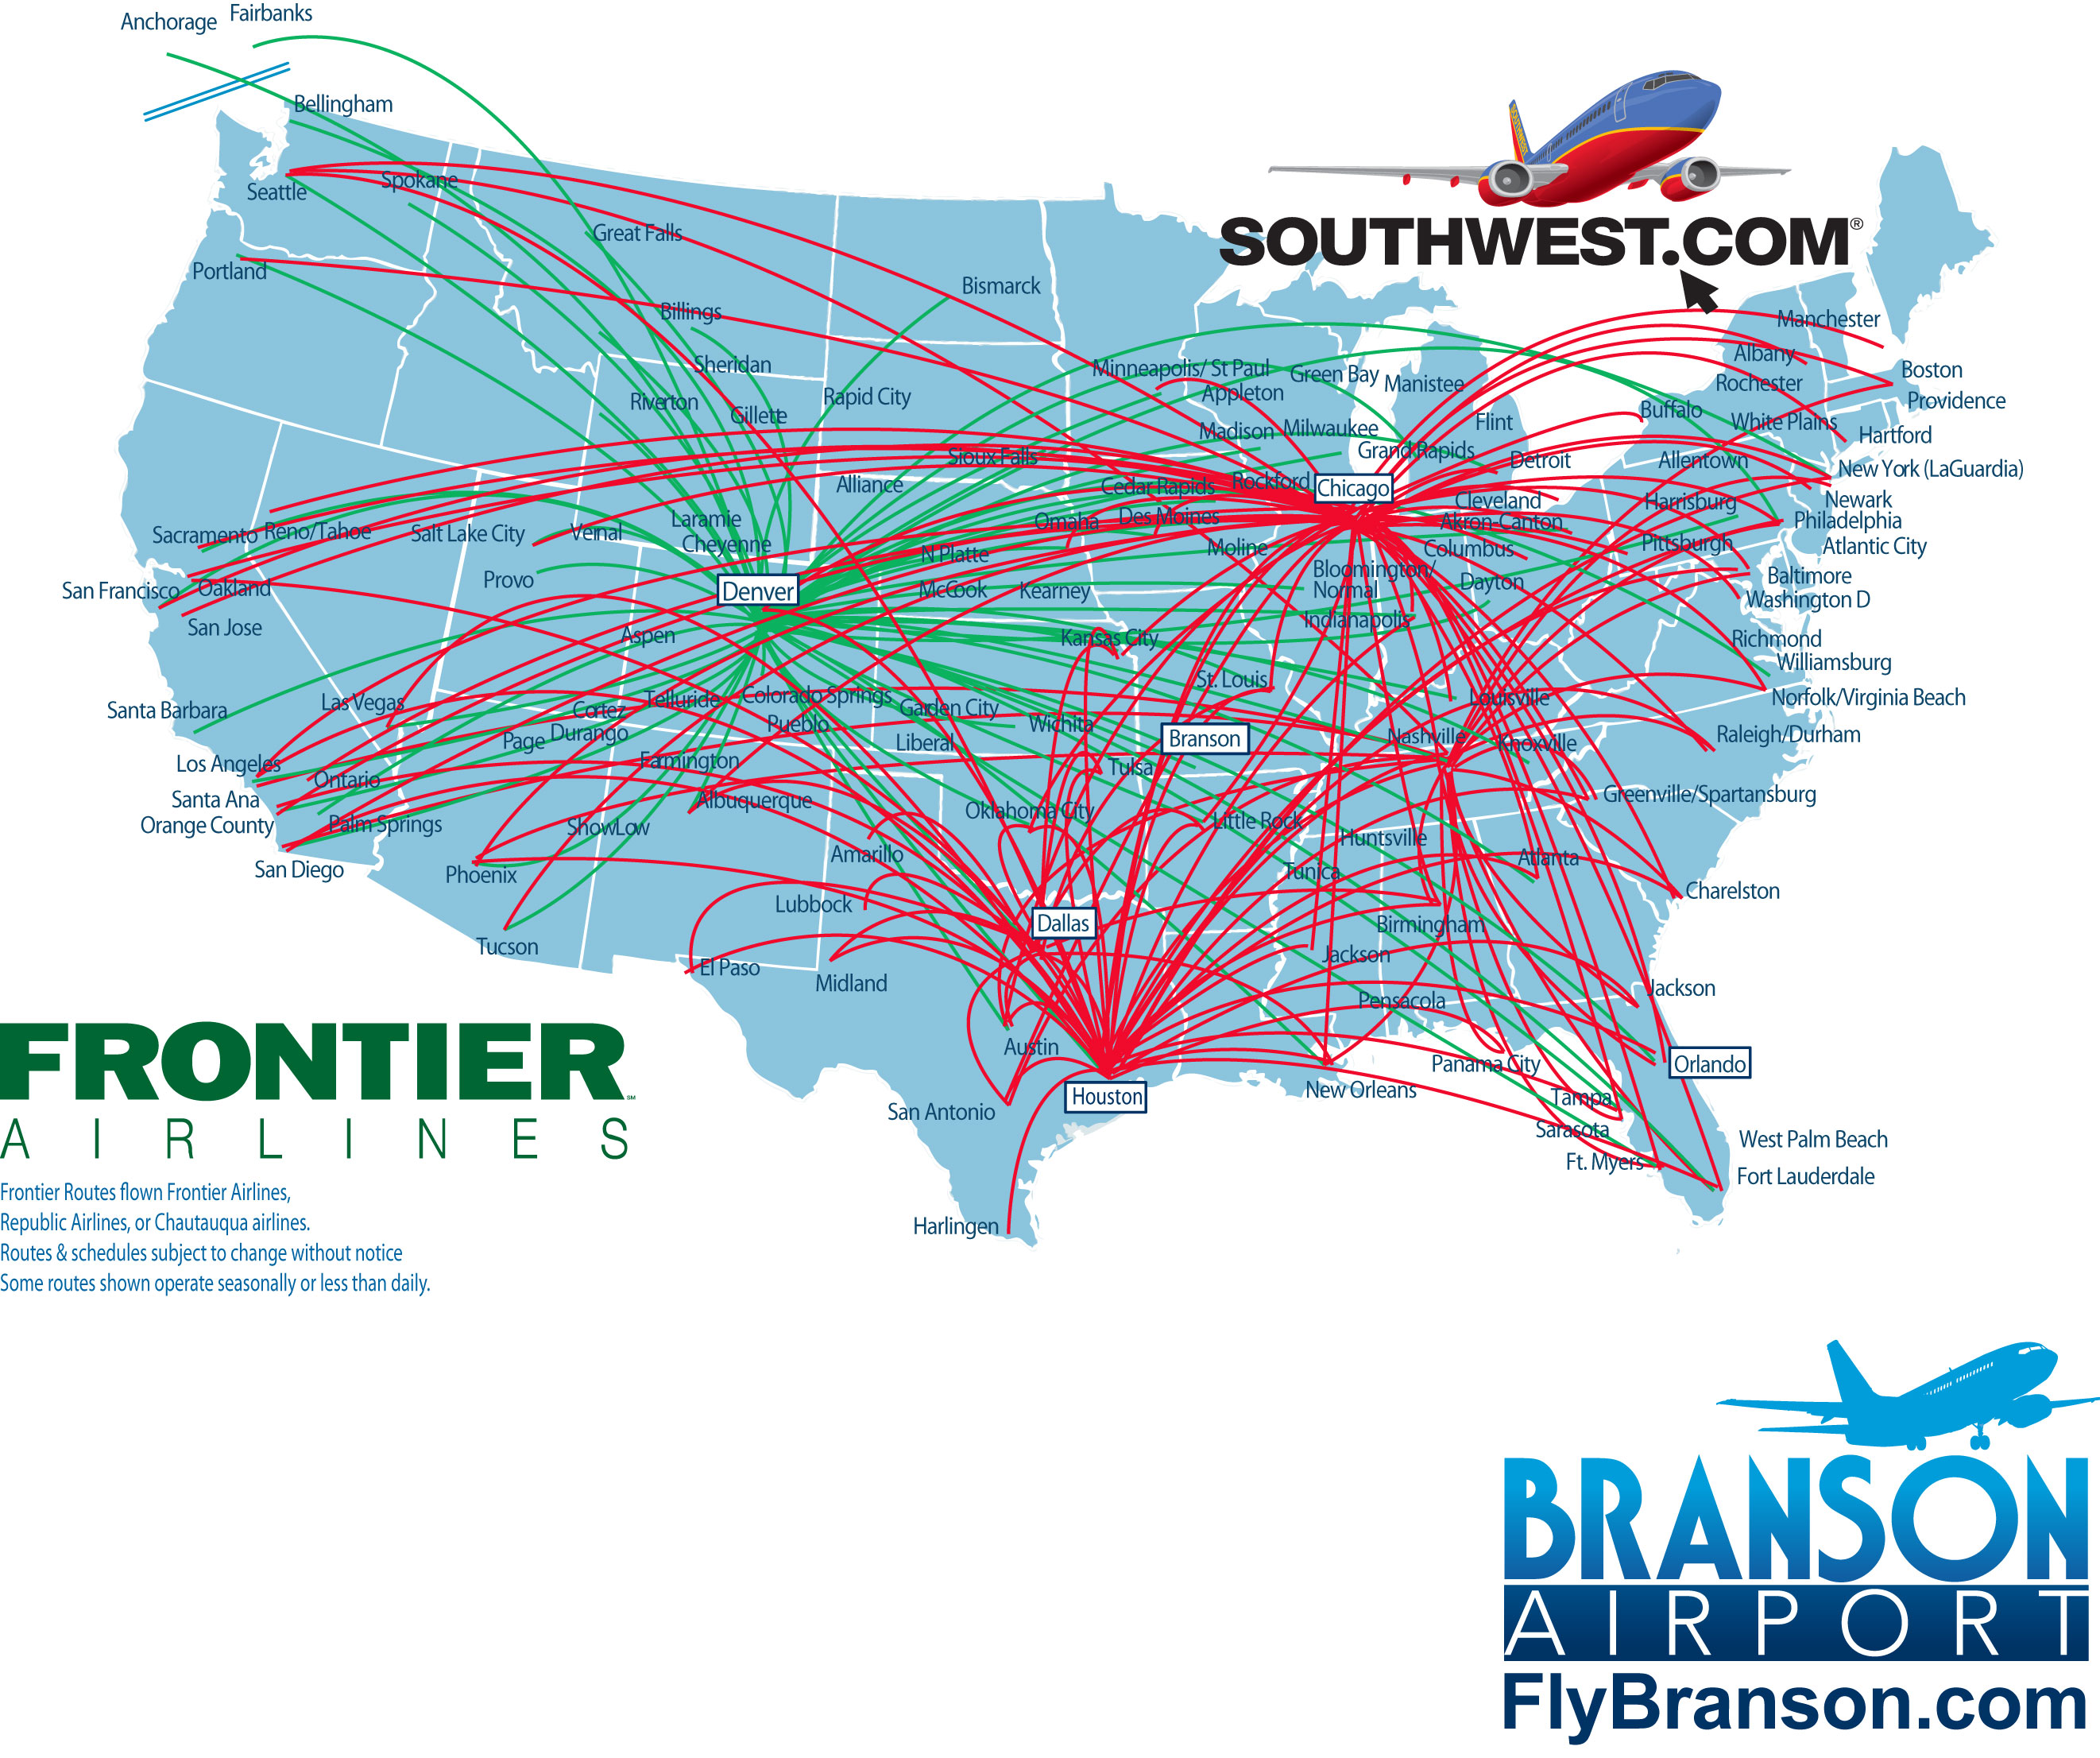 Branson Airport LLC Media – Southwest Airlines Travel Map